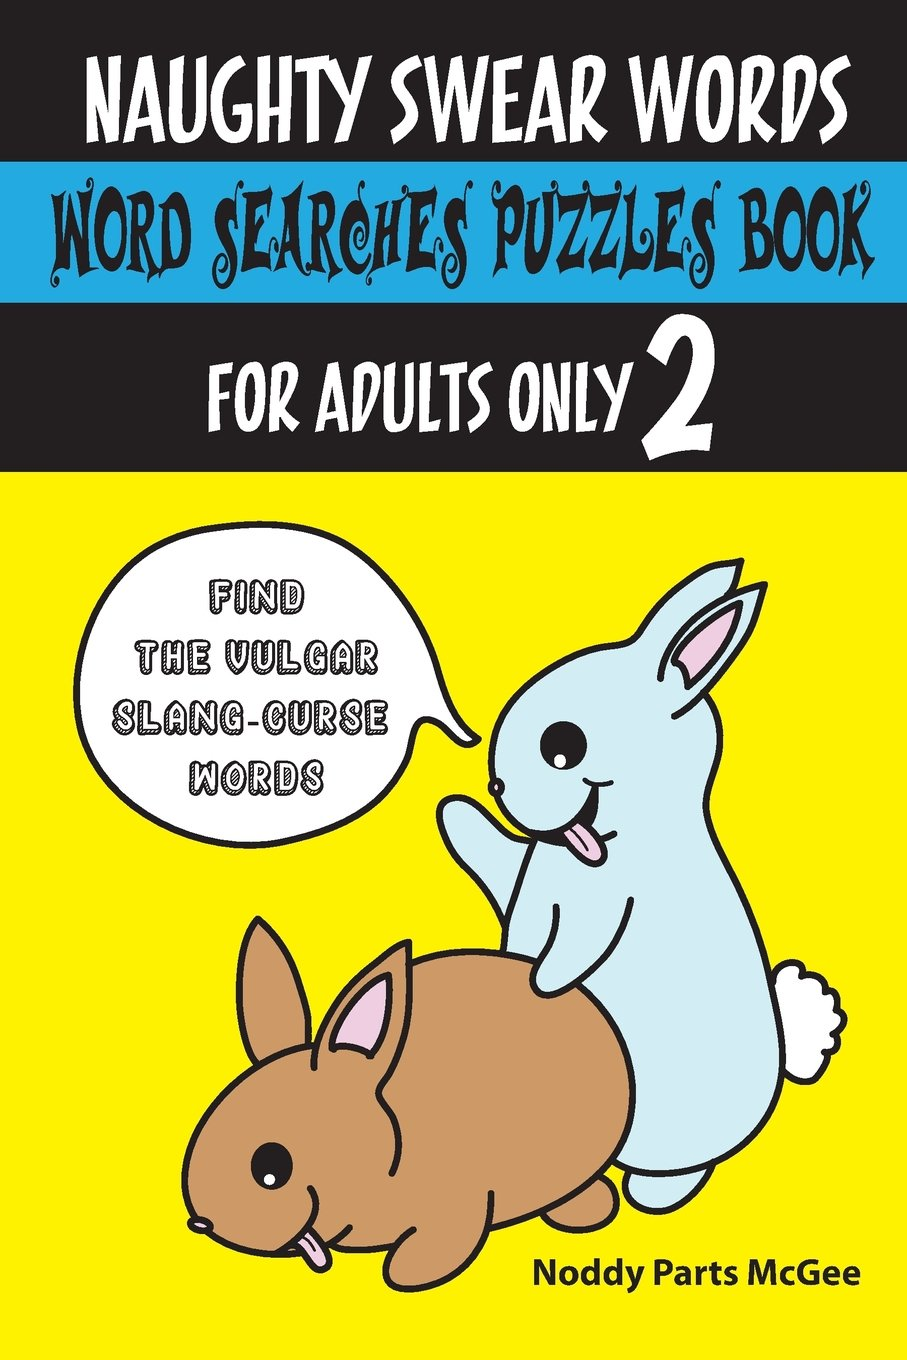 Download Naughty Swear Words Word Searches Puzzles Book for Adults Only 2: Find the Vulgar Slang-Curse Words (Swear Word Puzzles and Coloring) (Volume 5) PDF